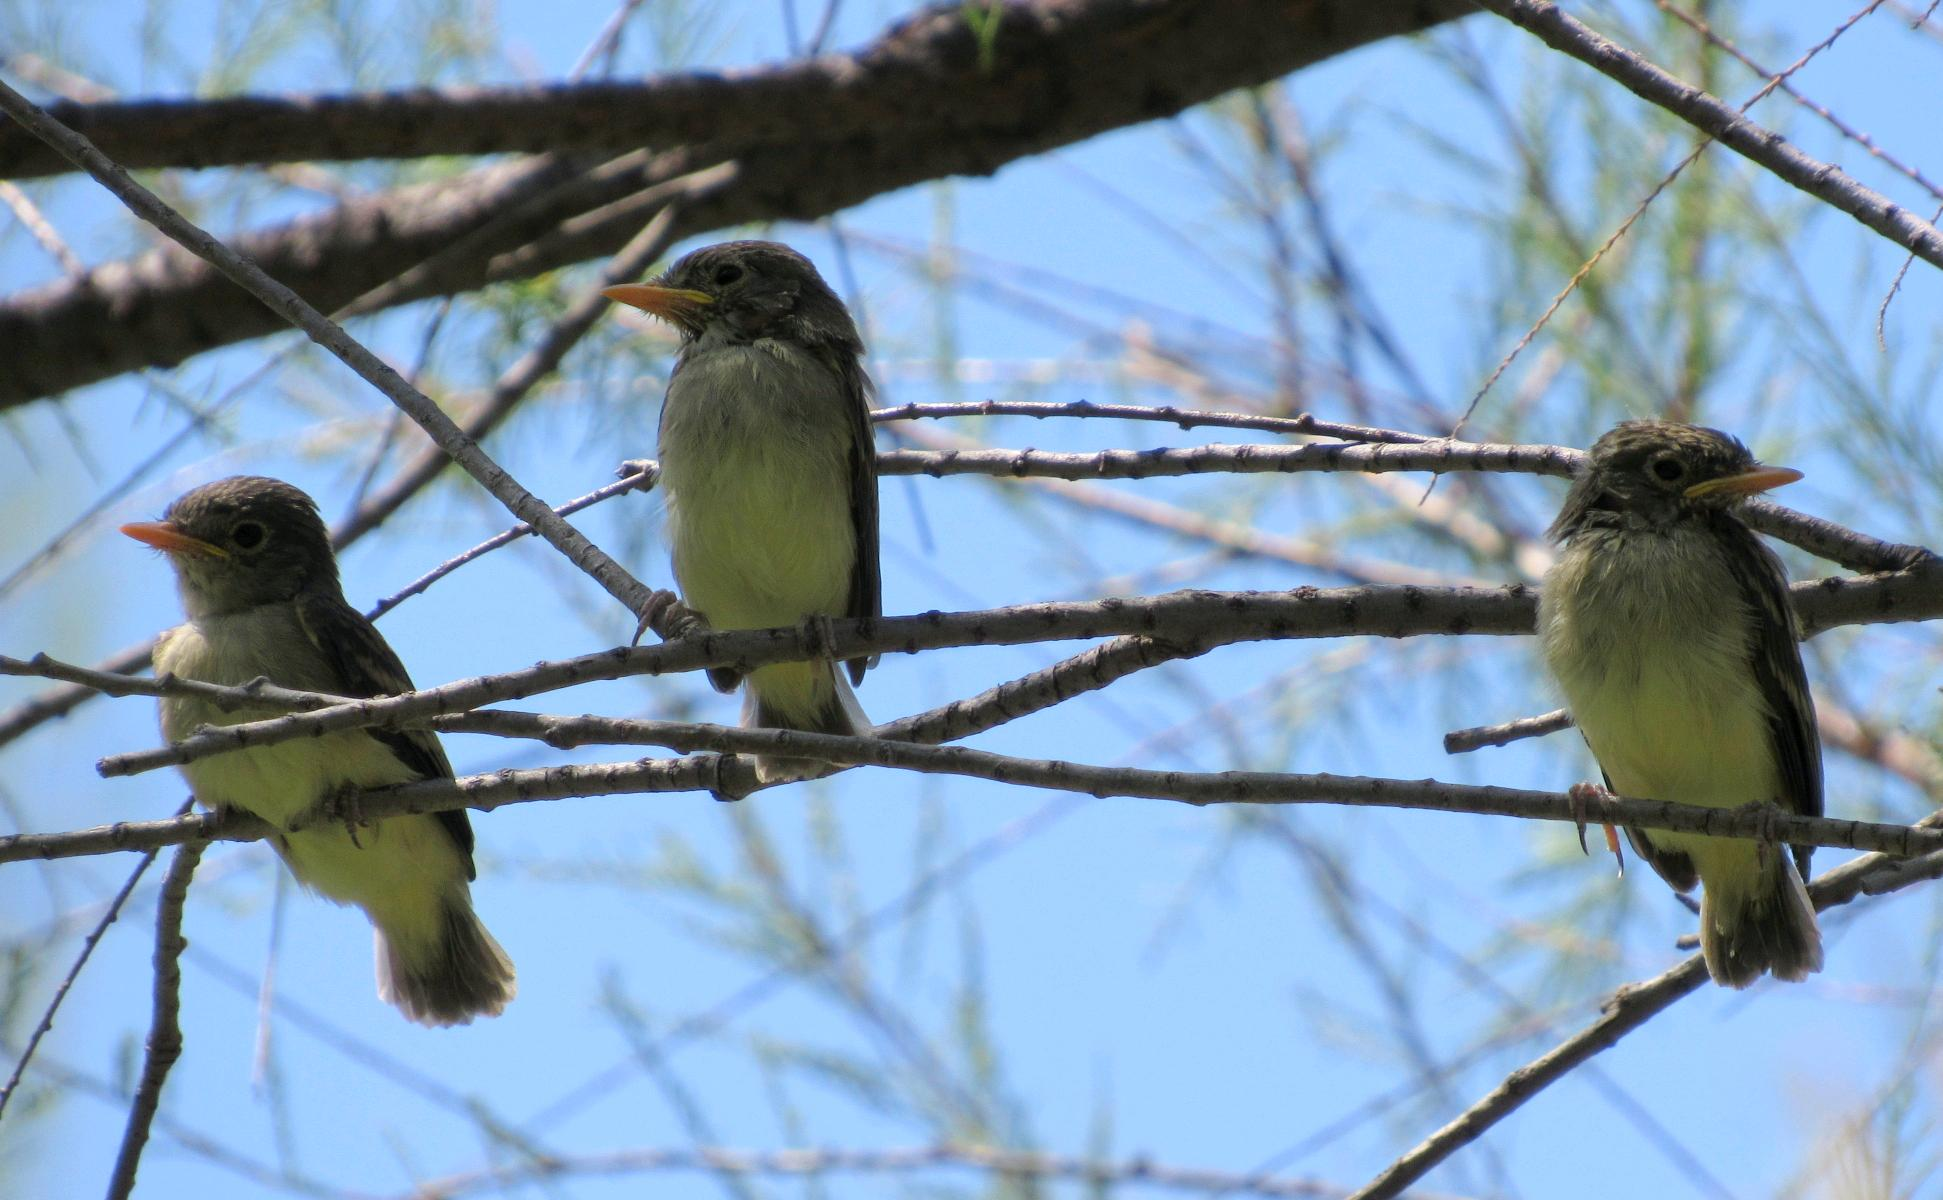 Southwestern willow flycatcher - Experts can distinguish the Southwestern willow flycatchers from other look-alike species by their loud, raspy